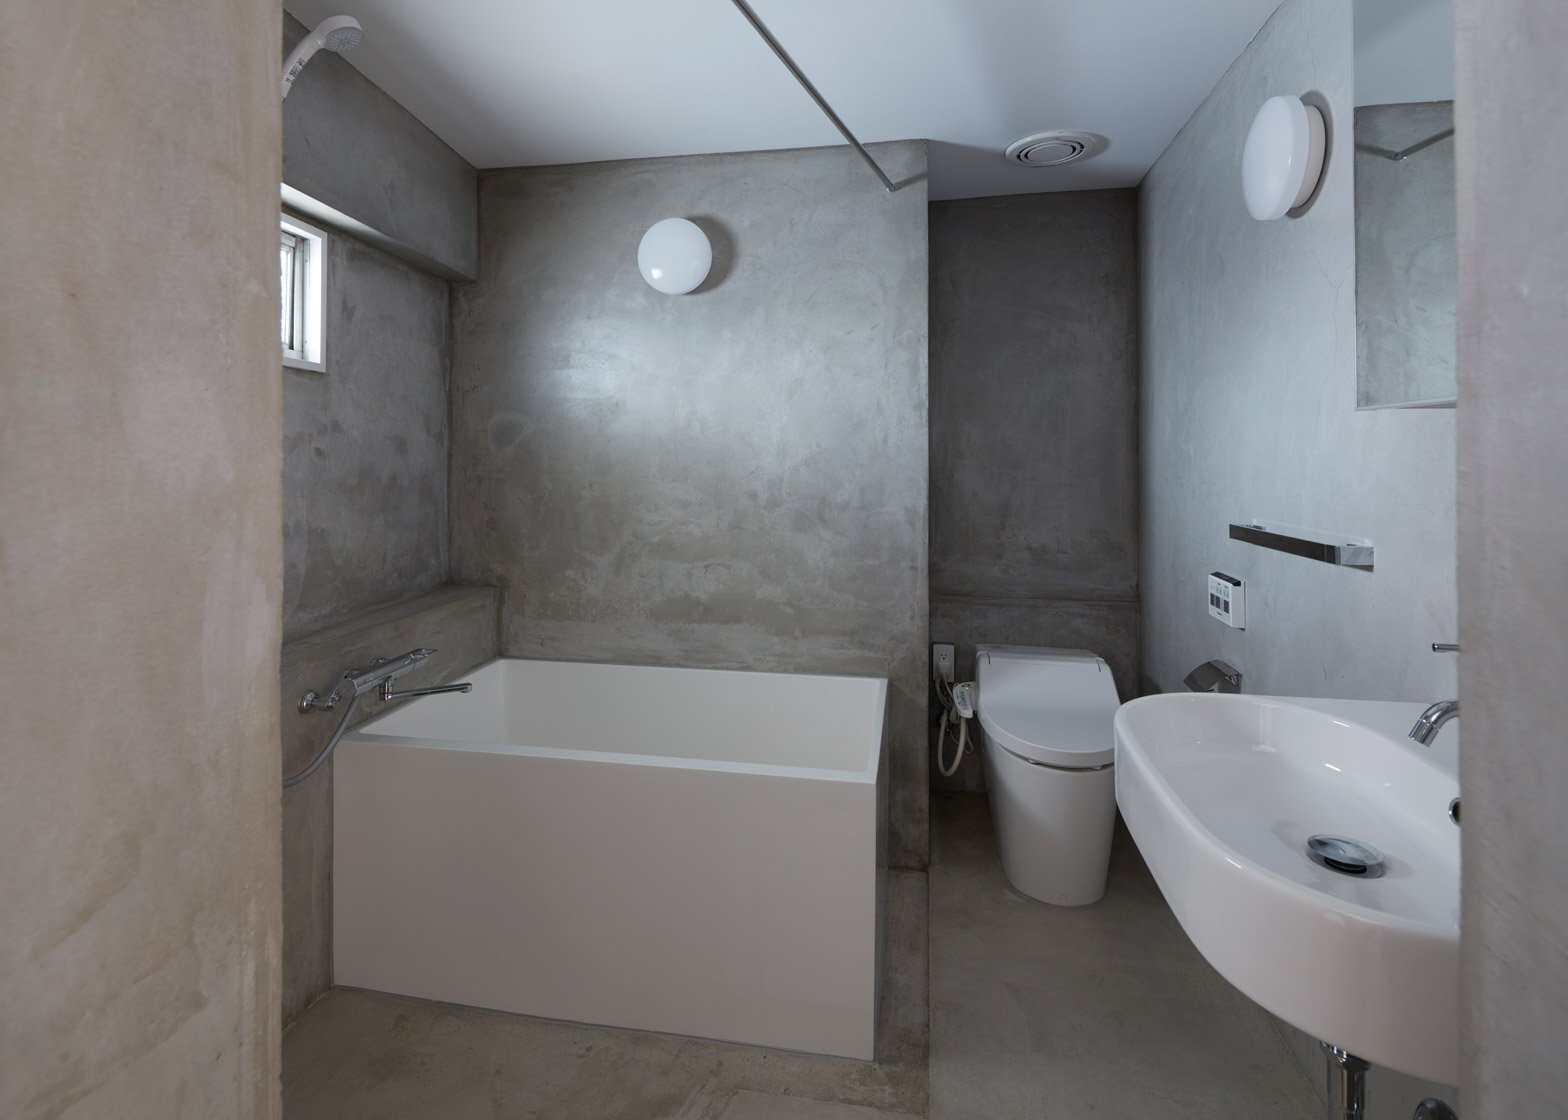 Apartments inside bathroom - Small Apartment Frontofficestudio Tokyo Bathroom Humble Homes